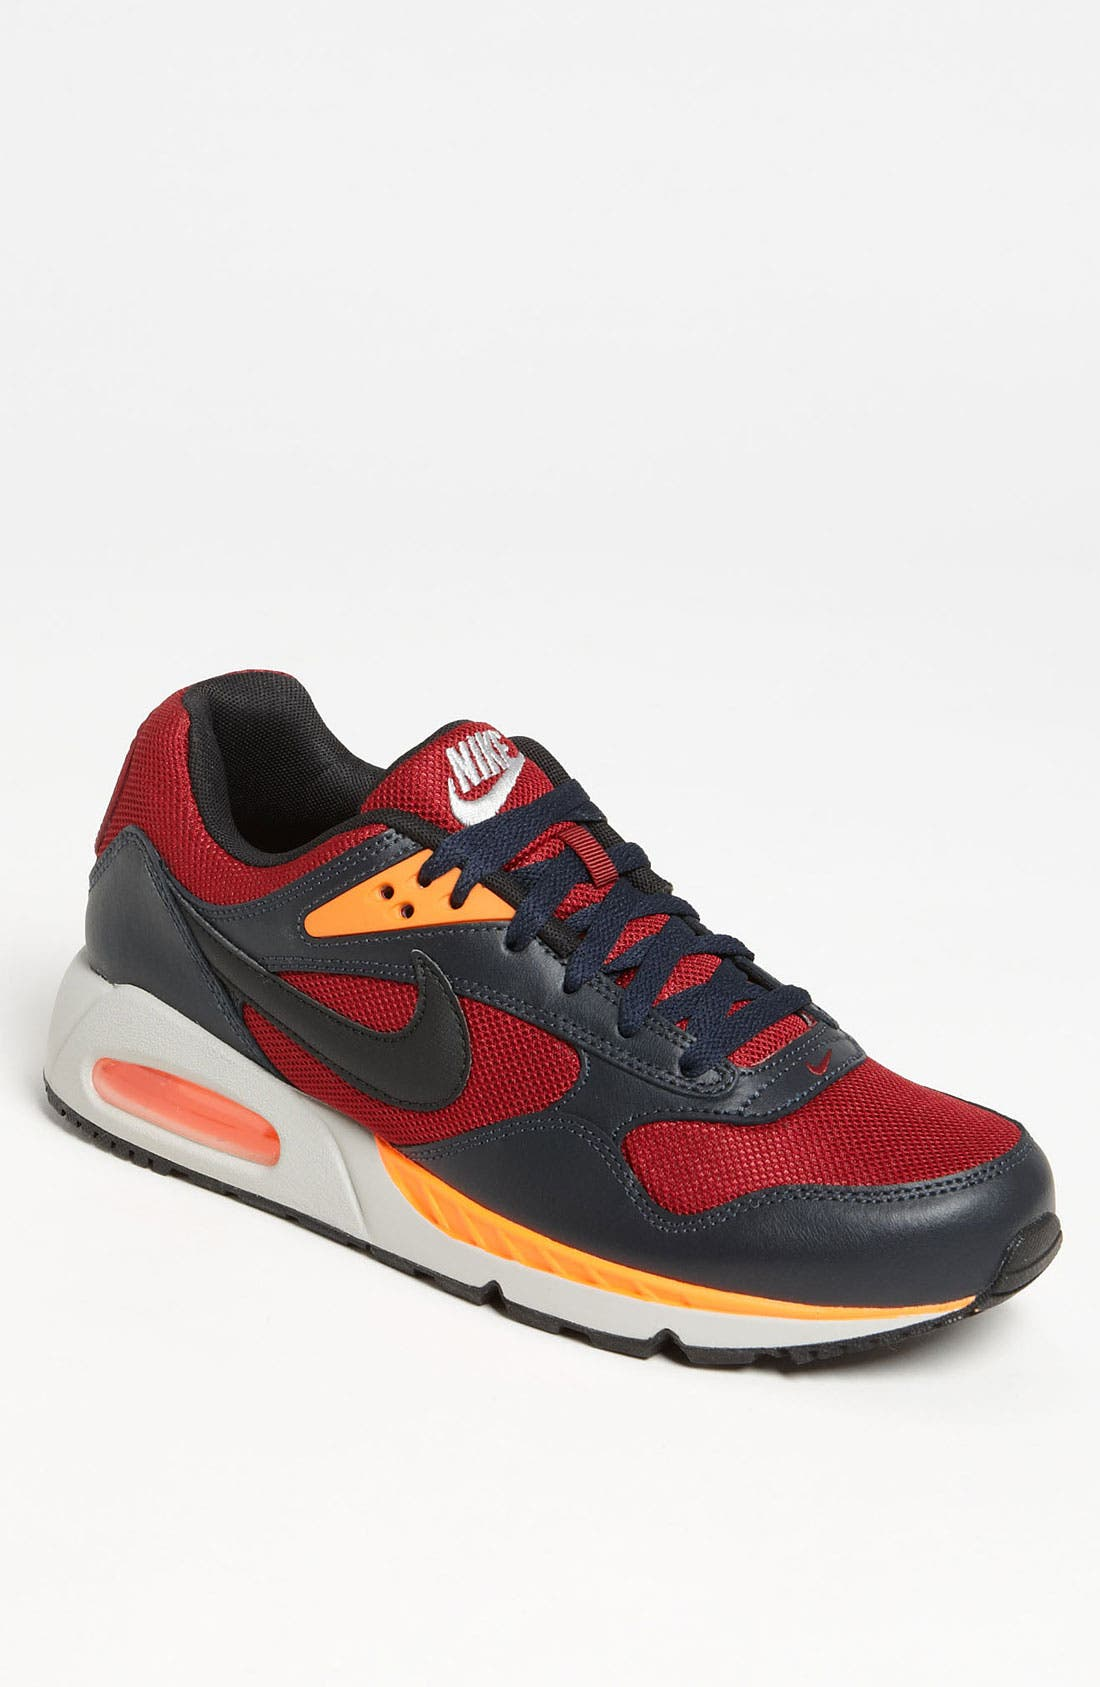 Alternate Image 1 Selected - Nike 'Air Max Correlate' Sneaker (Men) (Online Only)